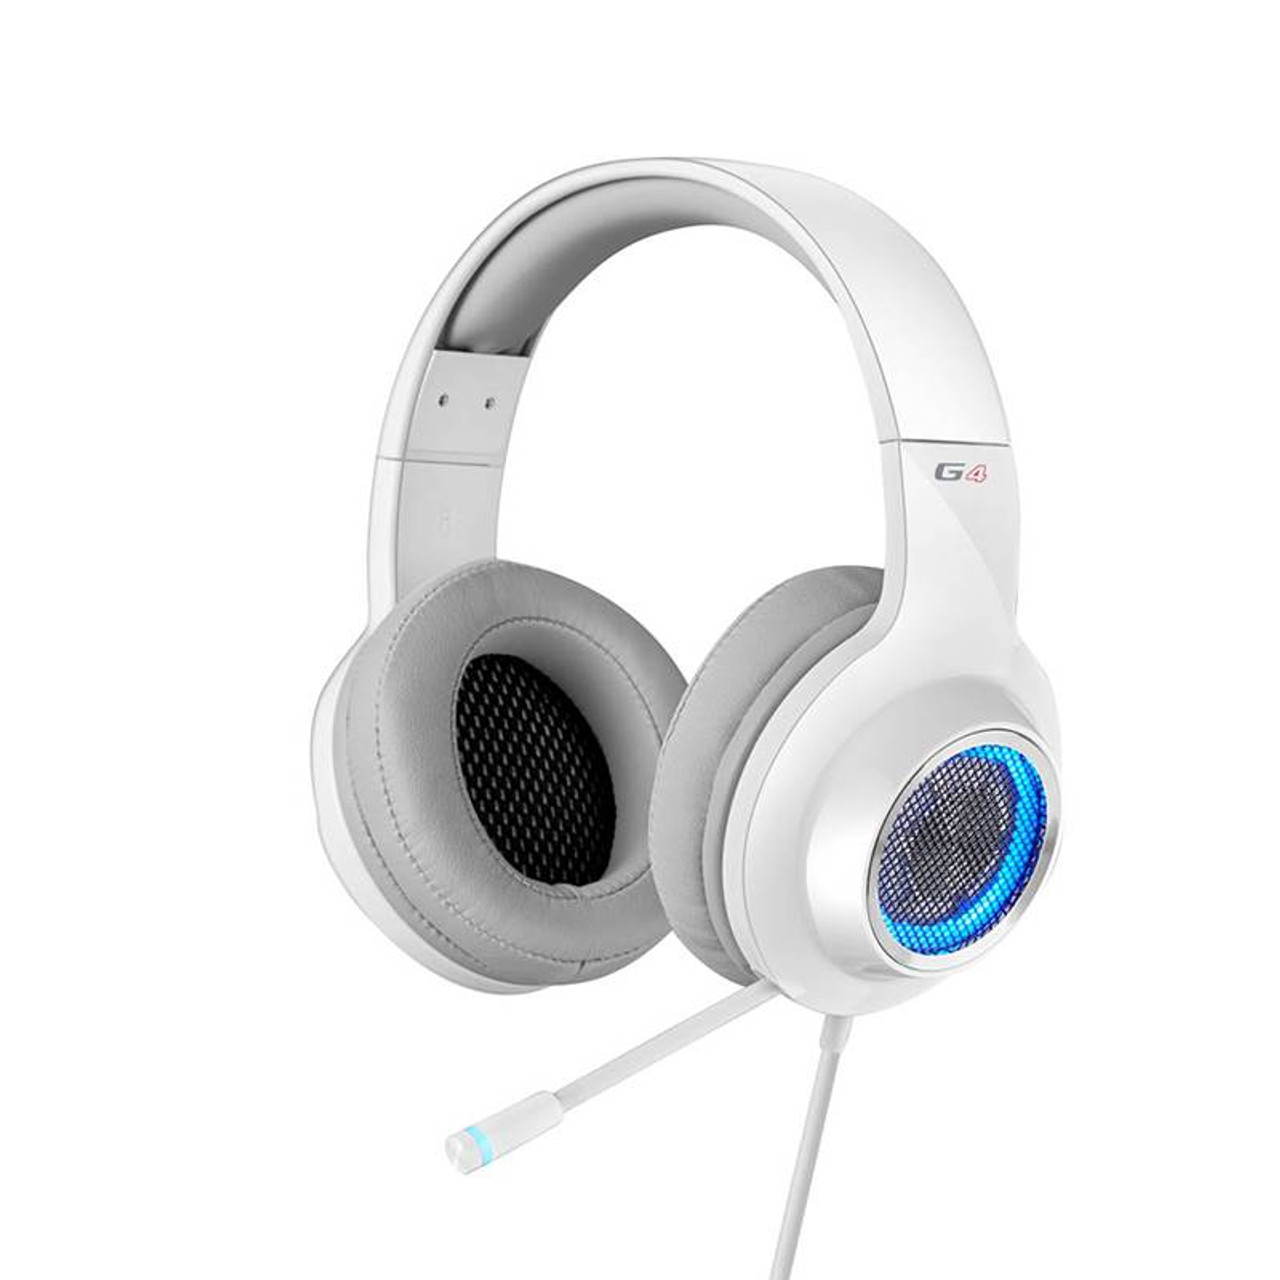 Image for Edifier G4 7.1 Virtual Surround Sound Gaming Headset - White CX Computer Superstore